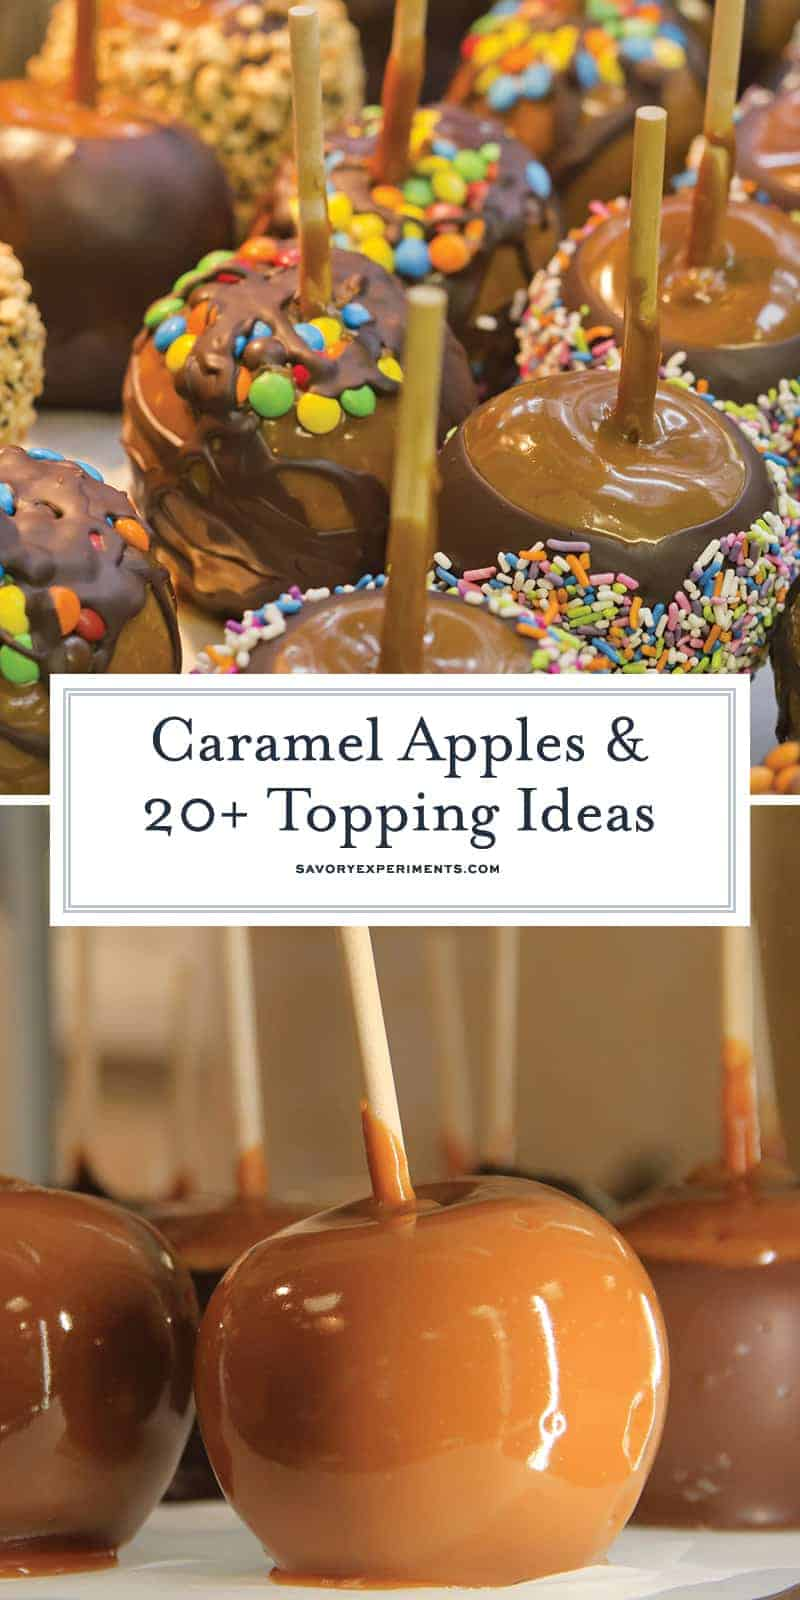 Classic caramel apples recipe with 20+ ideas to roll them in. Perfect for a fall dessert idea or a Halloween treat! #caramelapples www.savoryexperiments.com